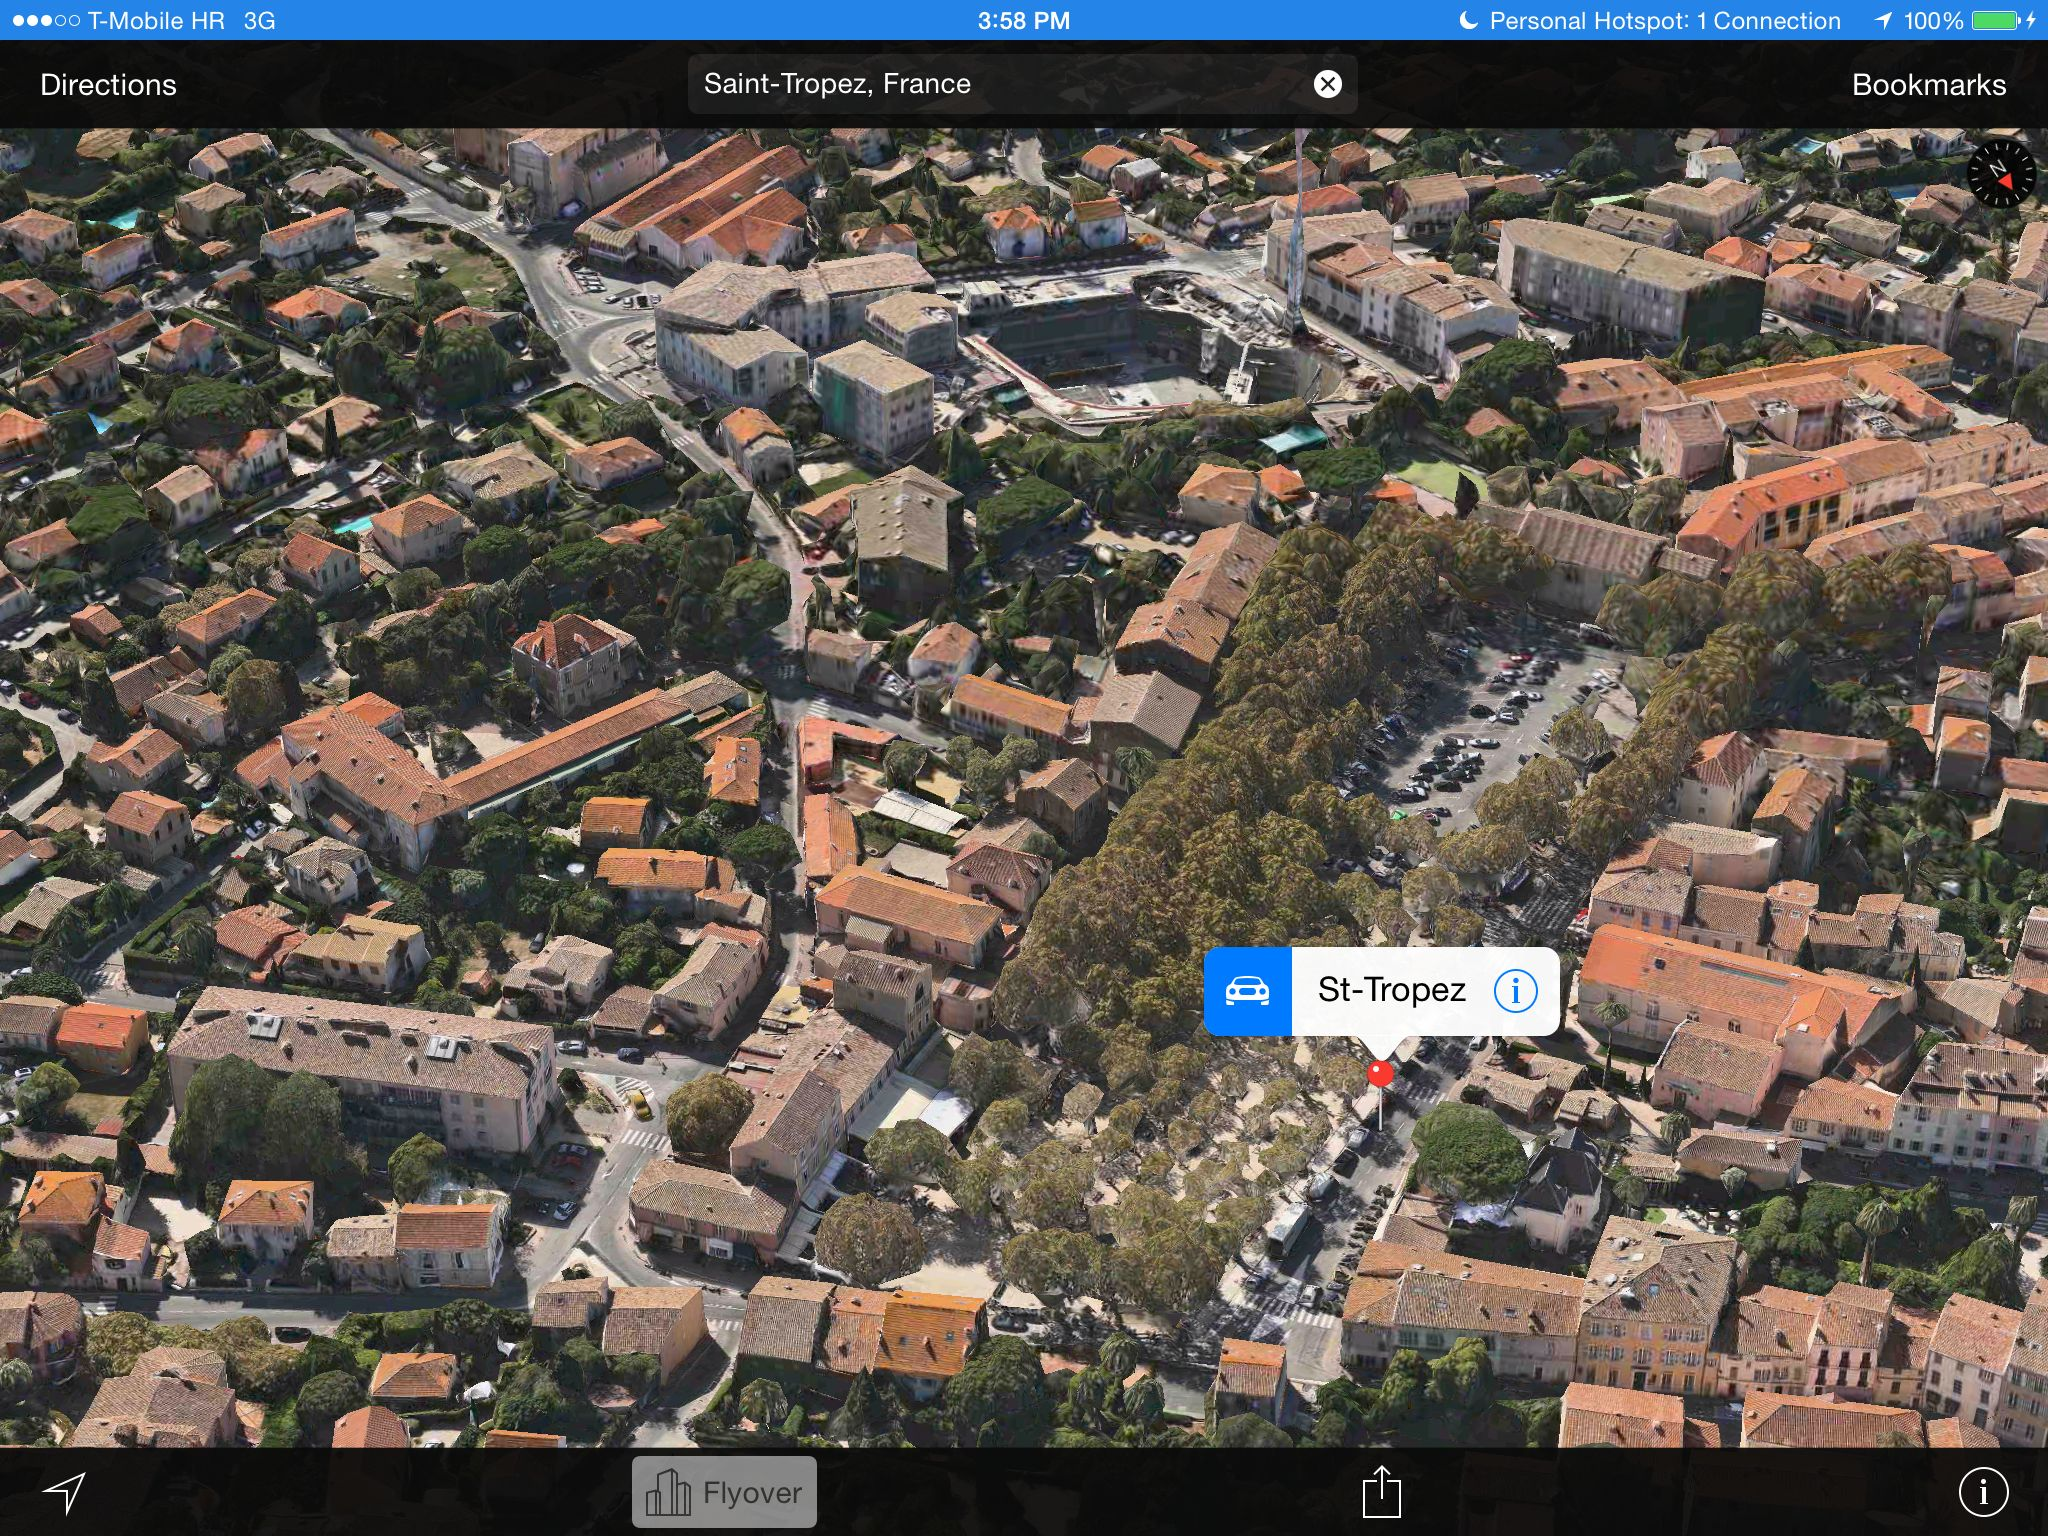 Apple Maps 3D Flyover (Saint Tropez, France)